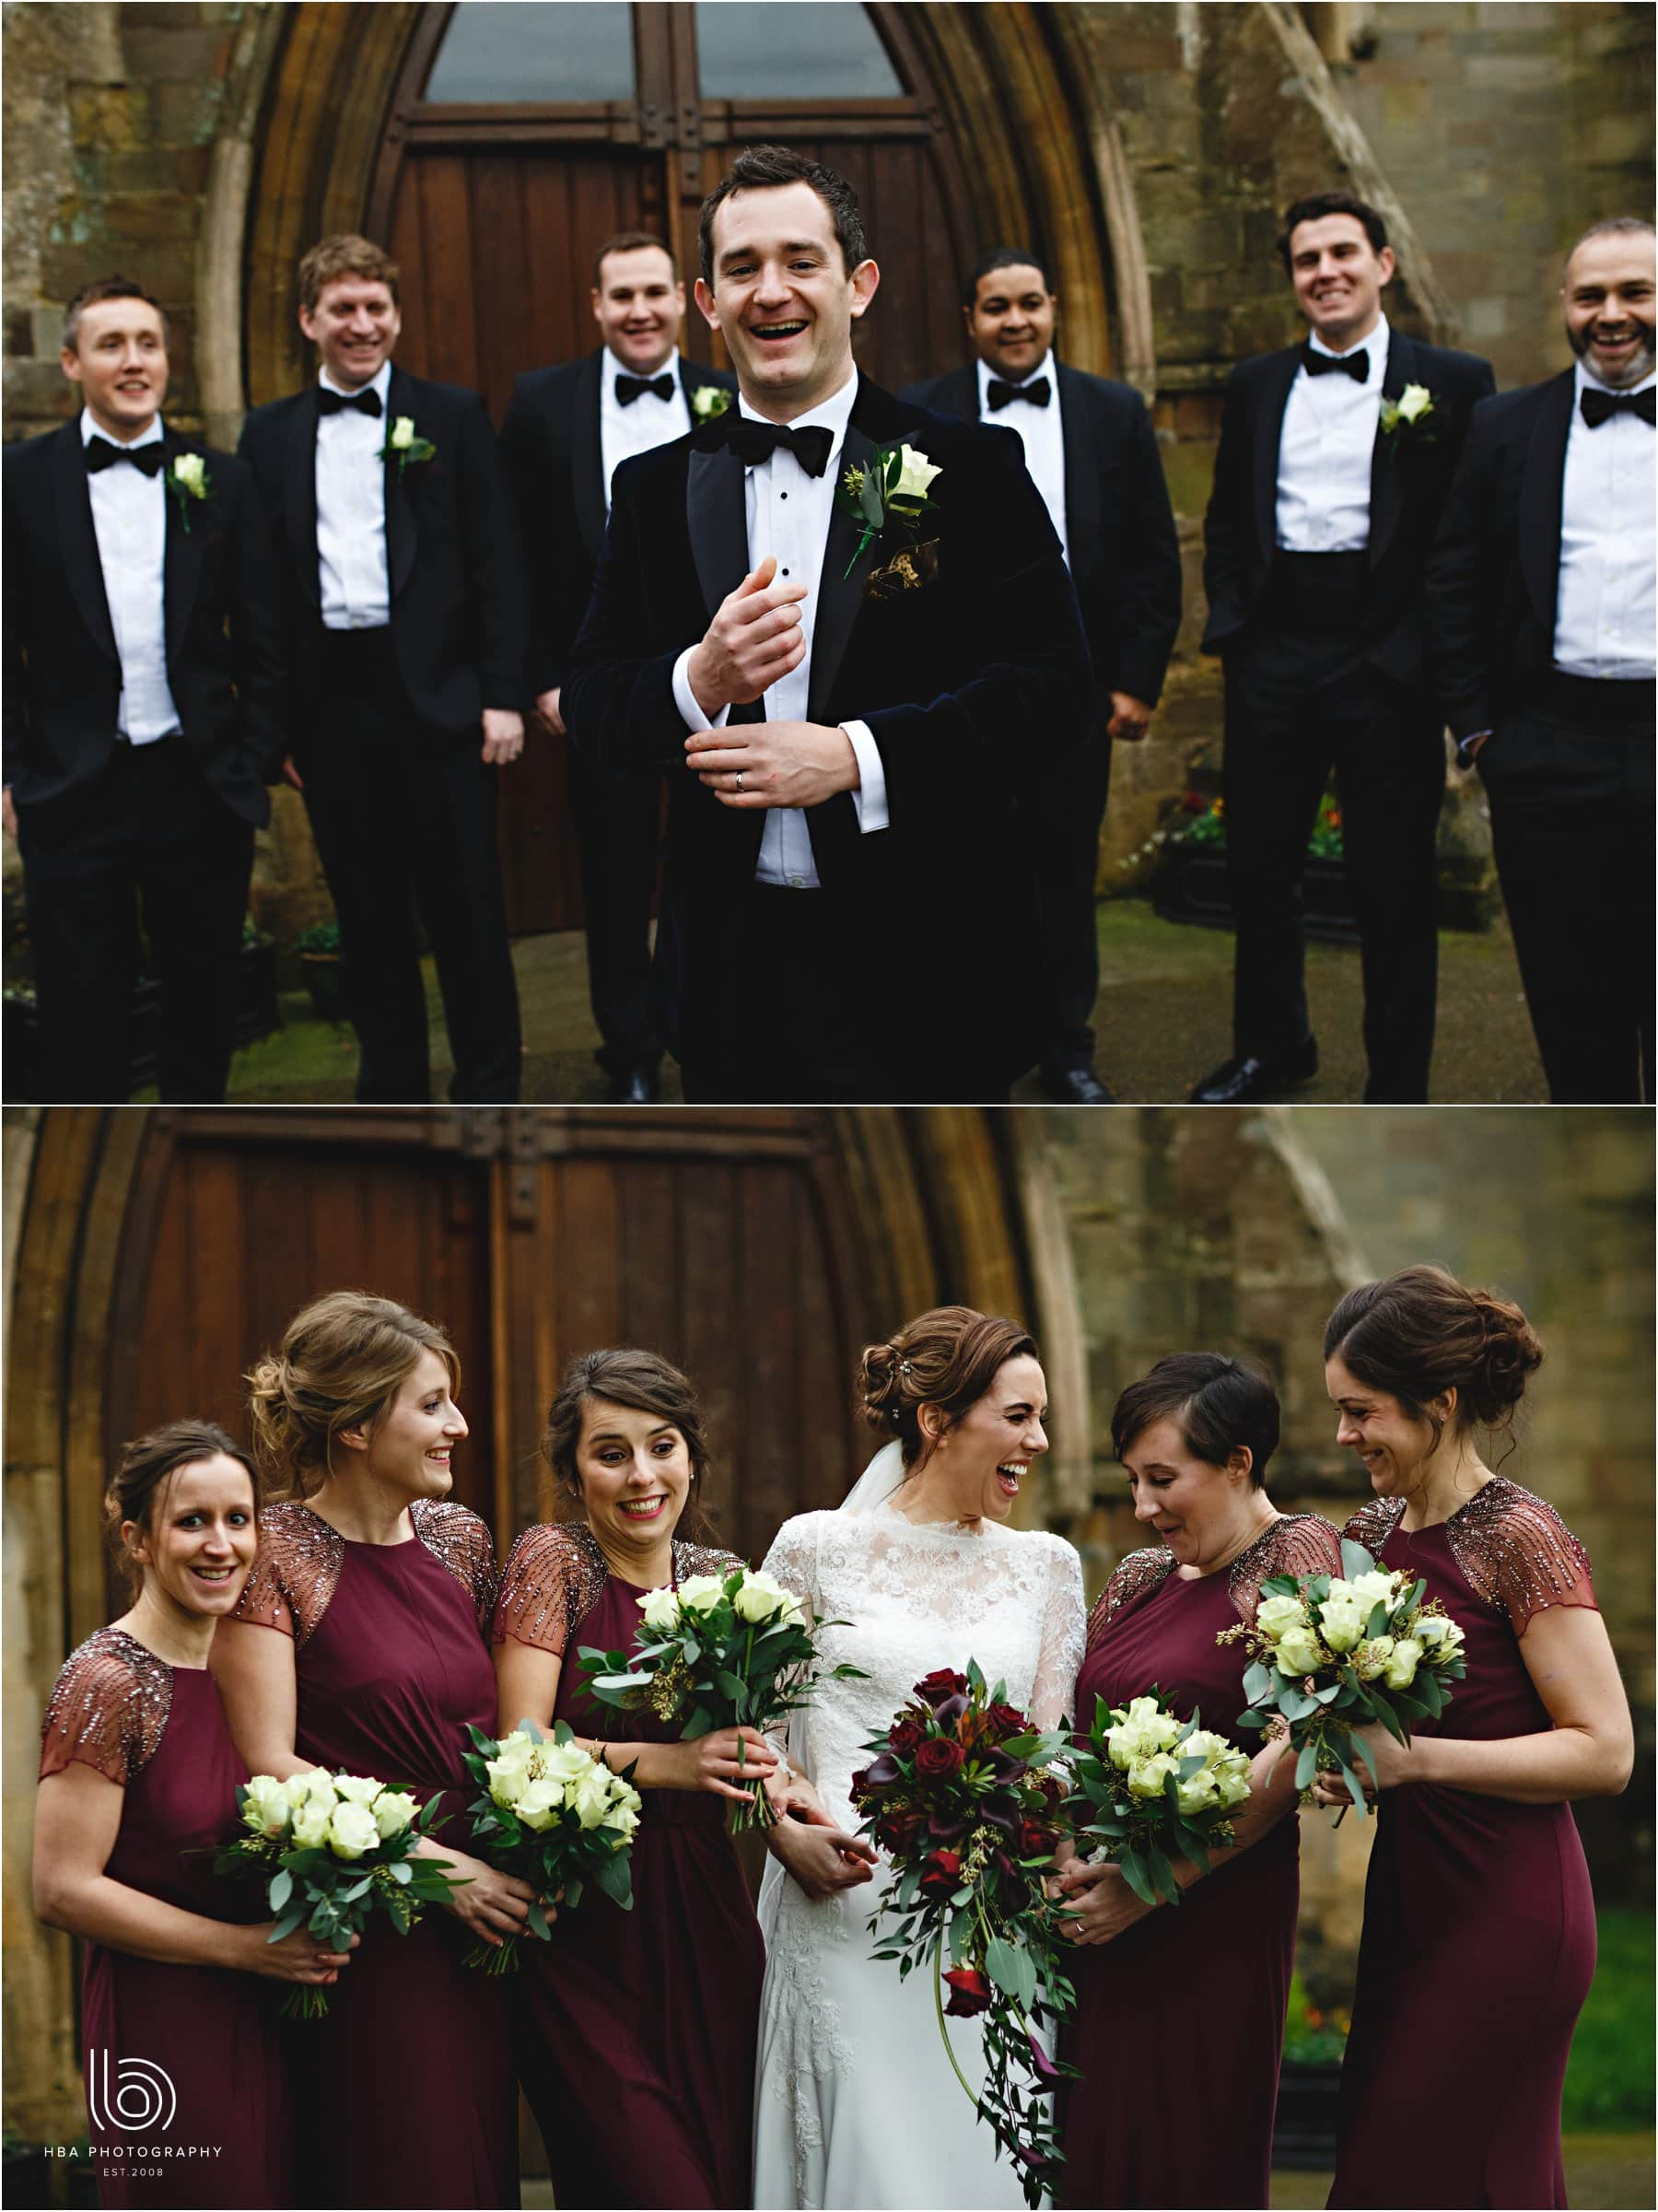 the bride and groom and the bridal party